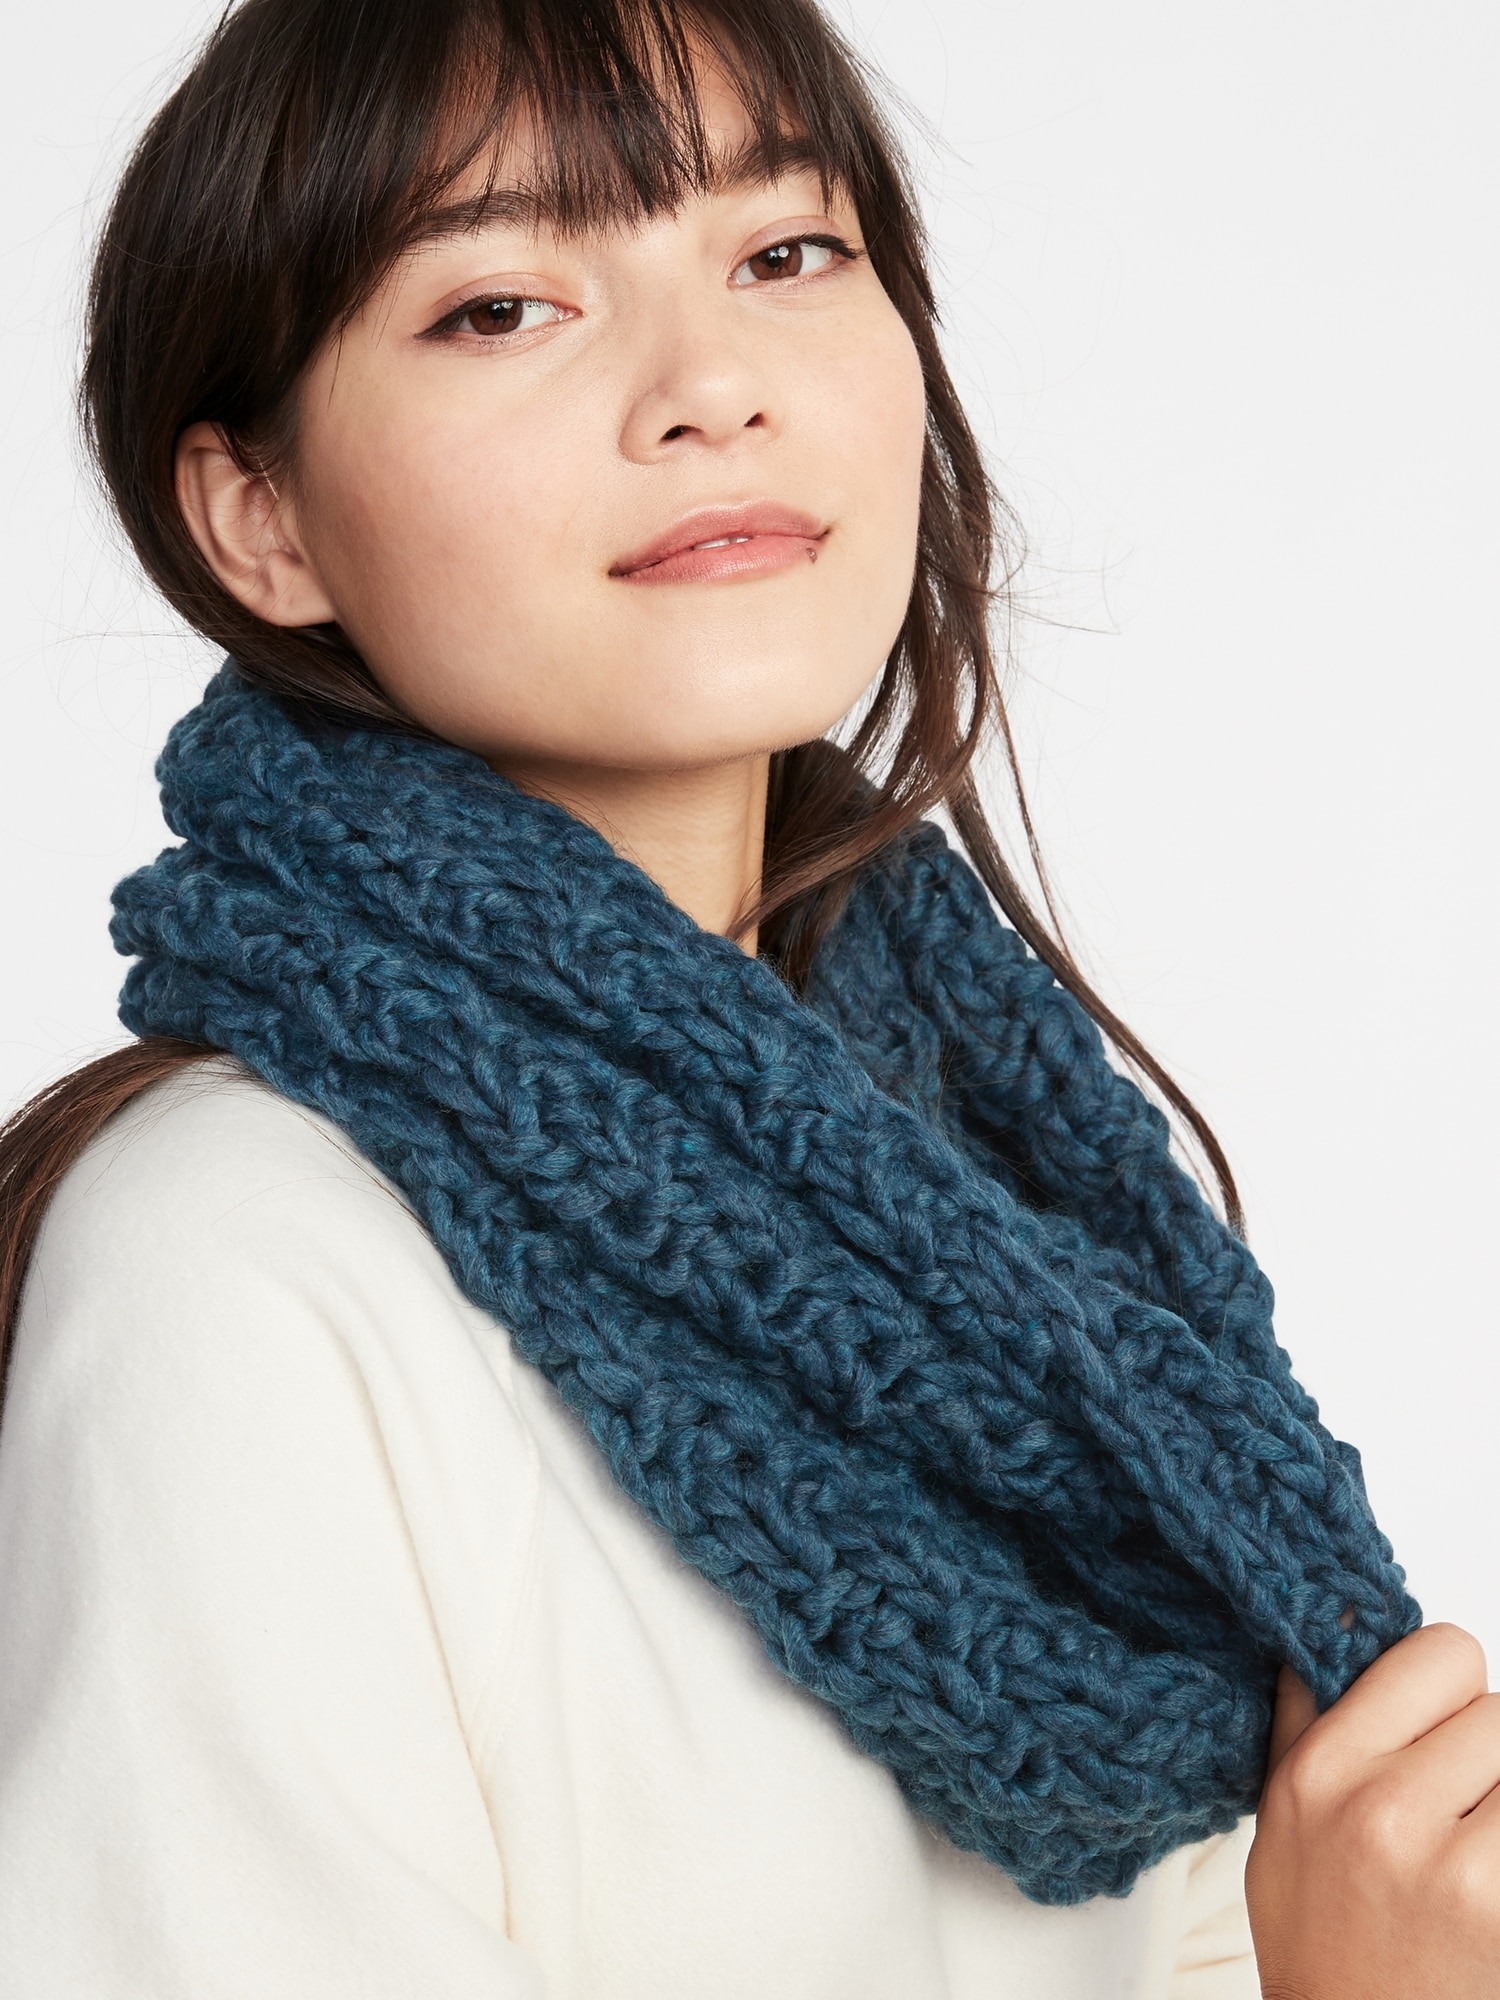 75d8d458450 Textured Basket-Weave Infinity Scarf for Women